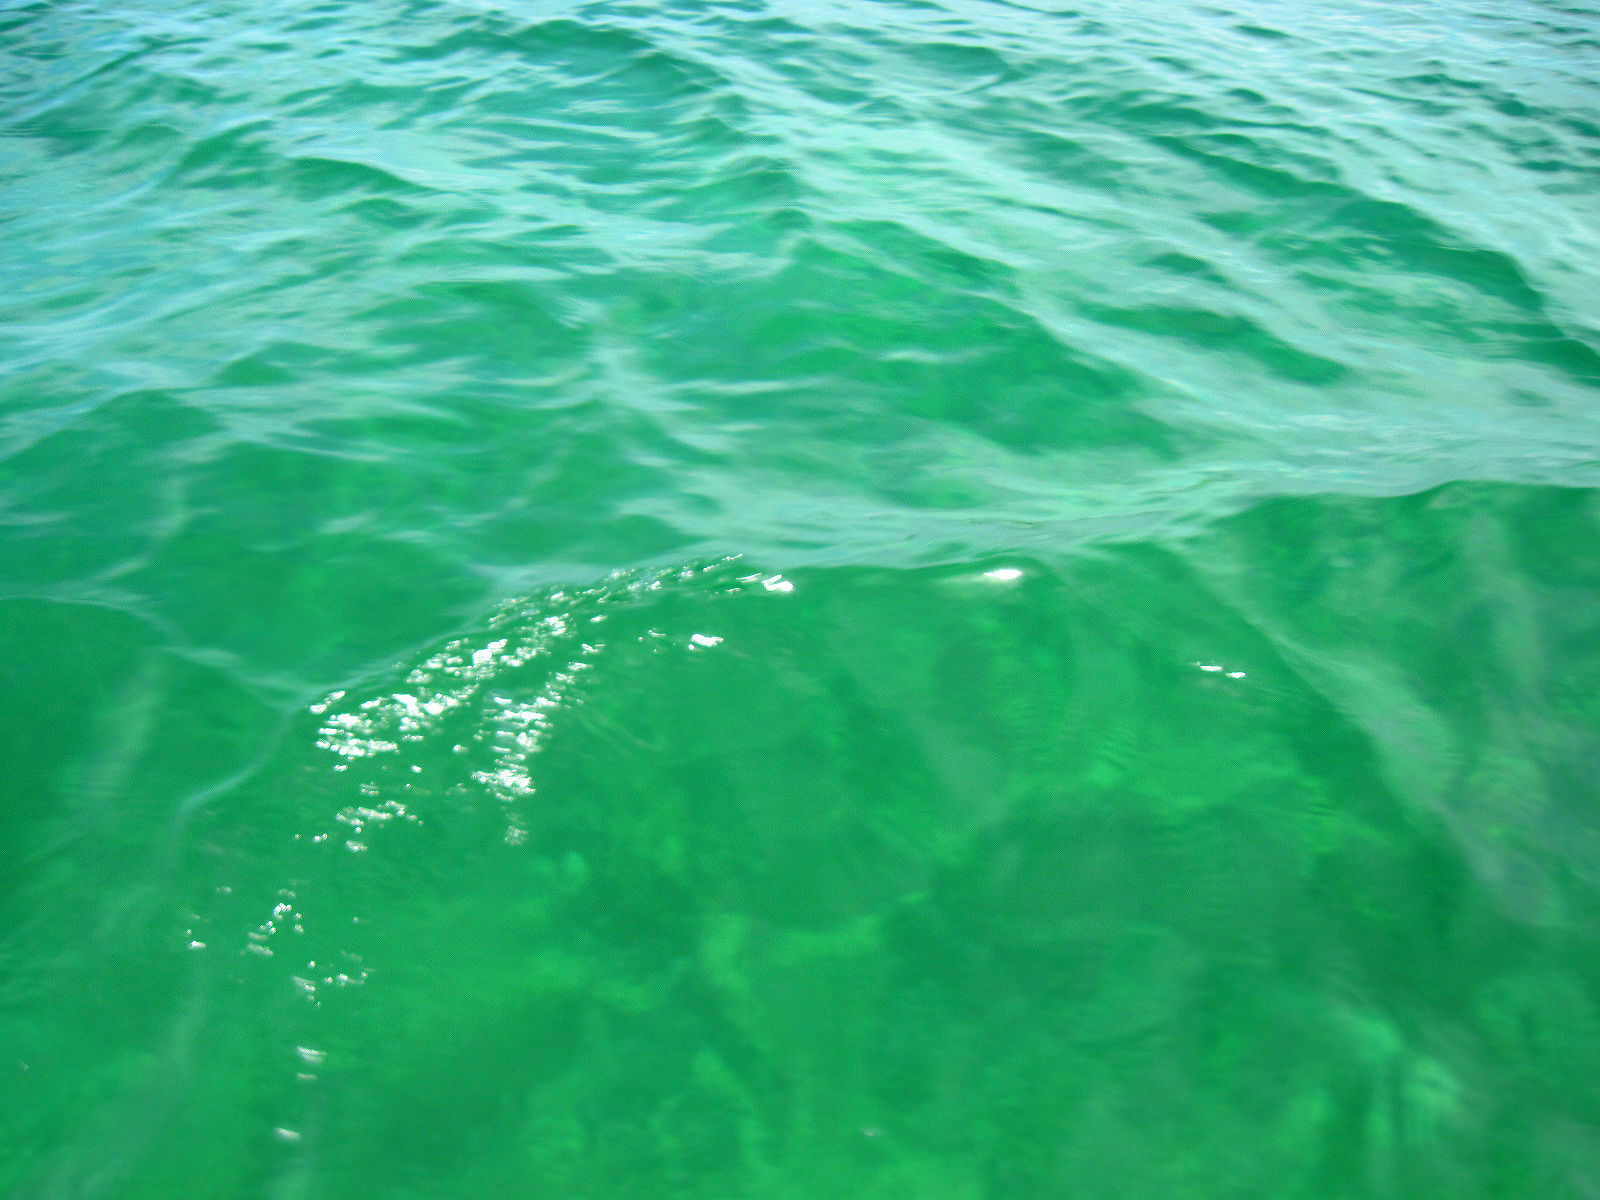 The clear blue waters of the San Bernardo Islands